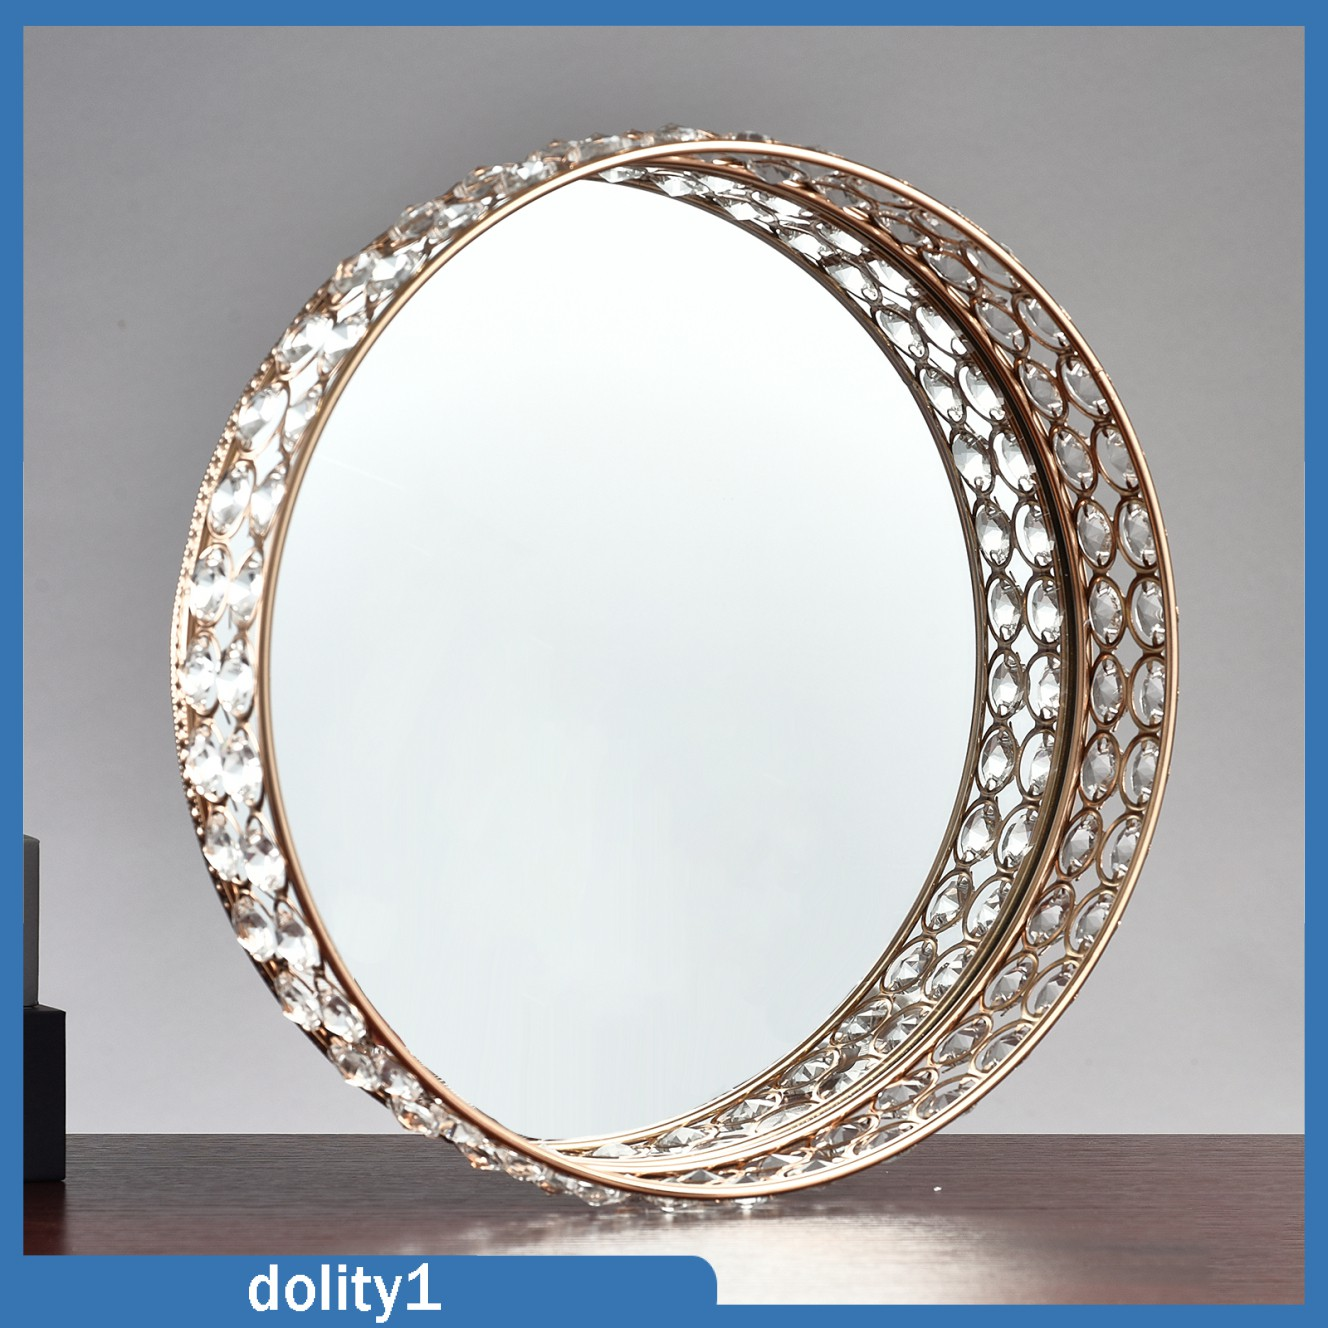 [DOLITY1] Crystal Cosmetic Vanity Tray Perfume Makeup Holder Box Dresser Home Decor